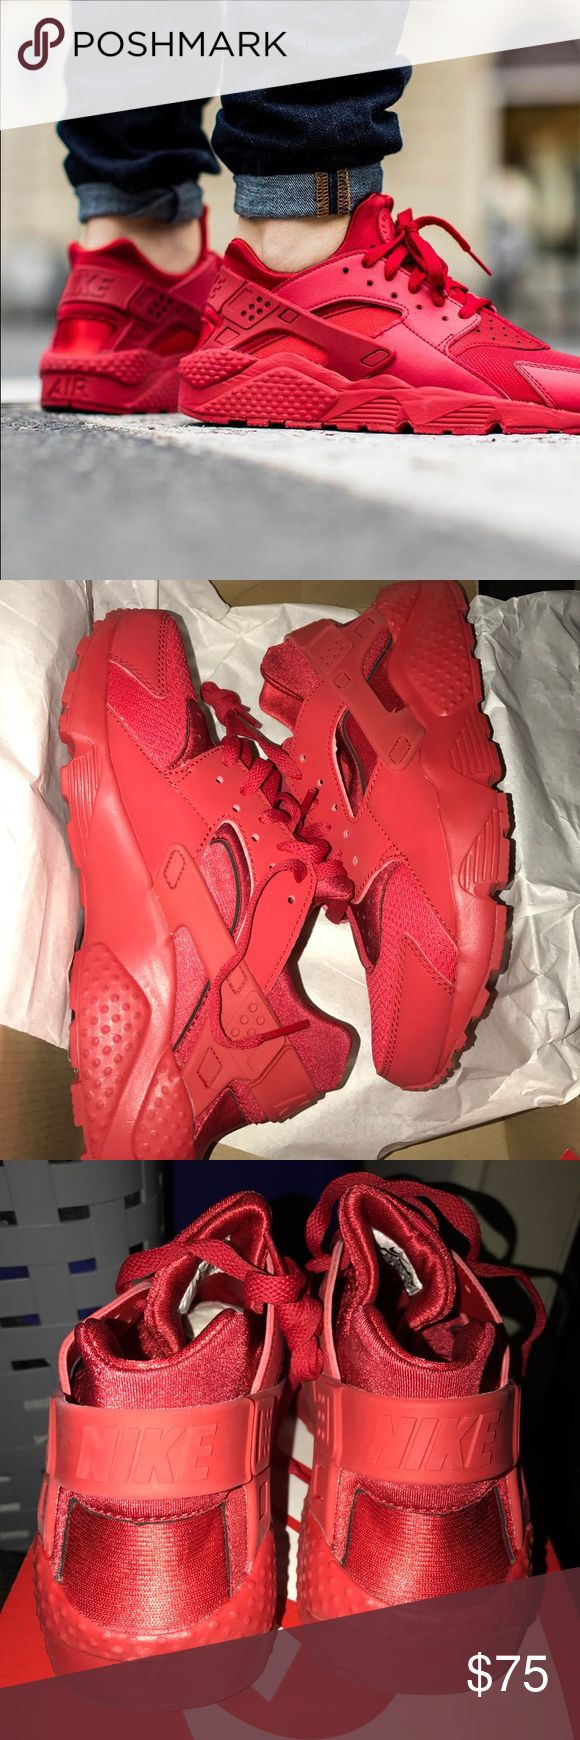 Nike Huarache Red 6Y 7.5 Women's New never worn. Comes with box. No trades, firm on price. Shoe is worth $102 with tax and shipping online & Around $92 without. Selling for less. 6Y, 7.5 in women's. Nike Shoes Sneakers